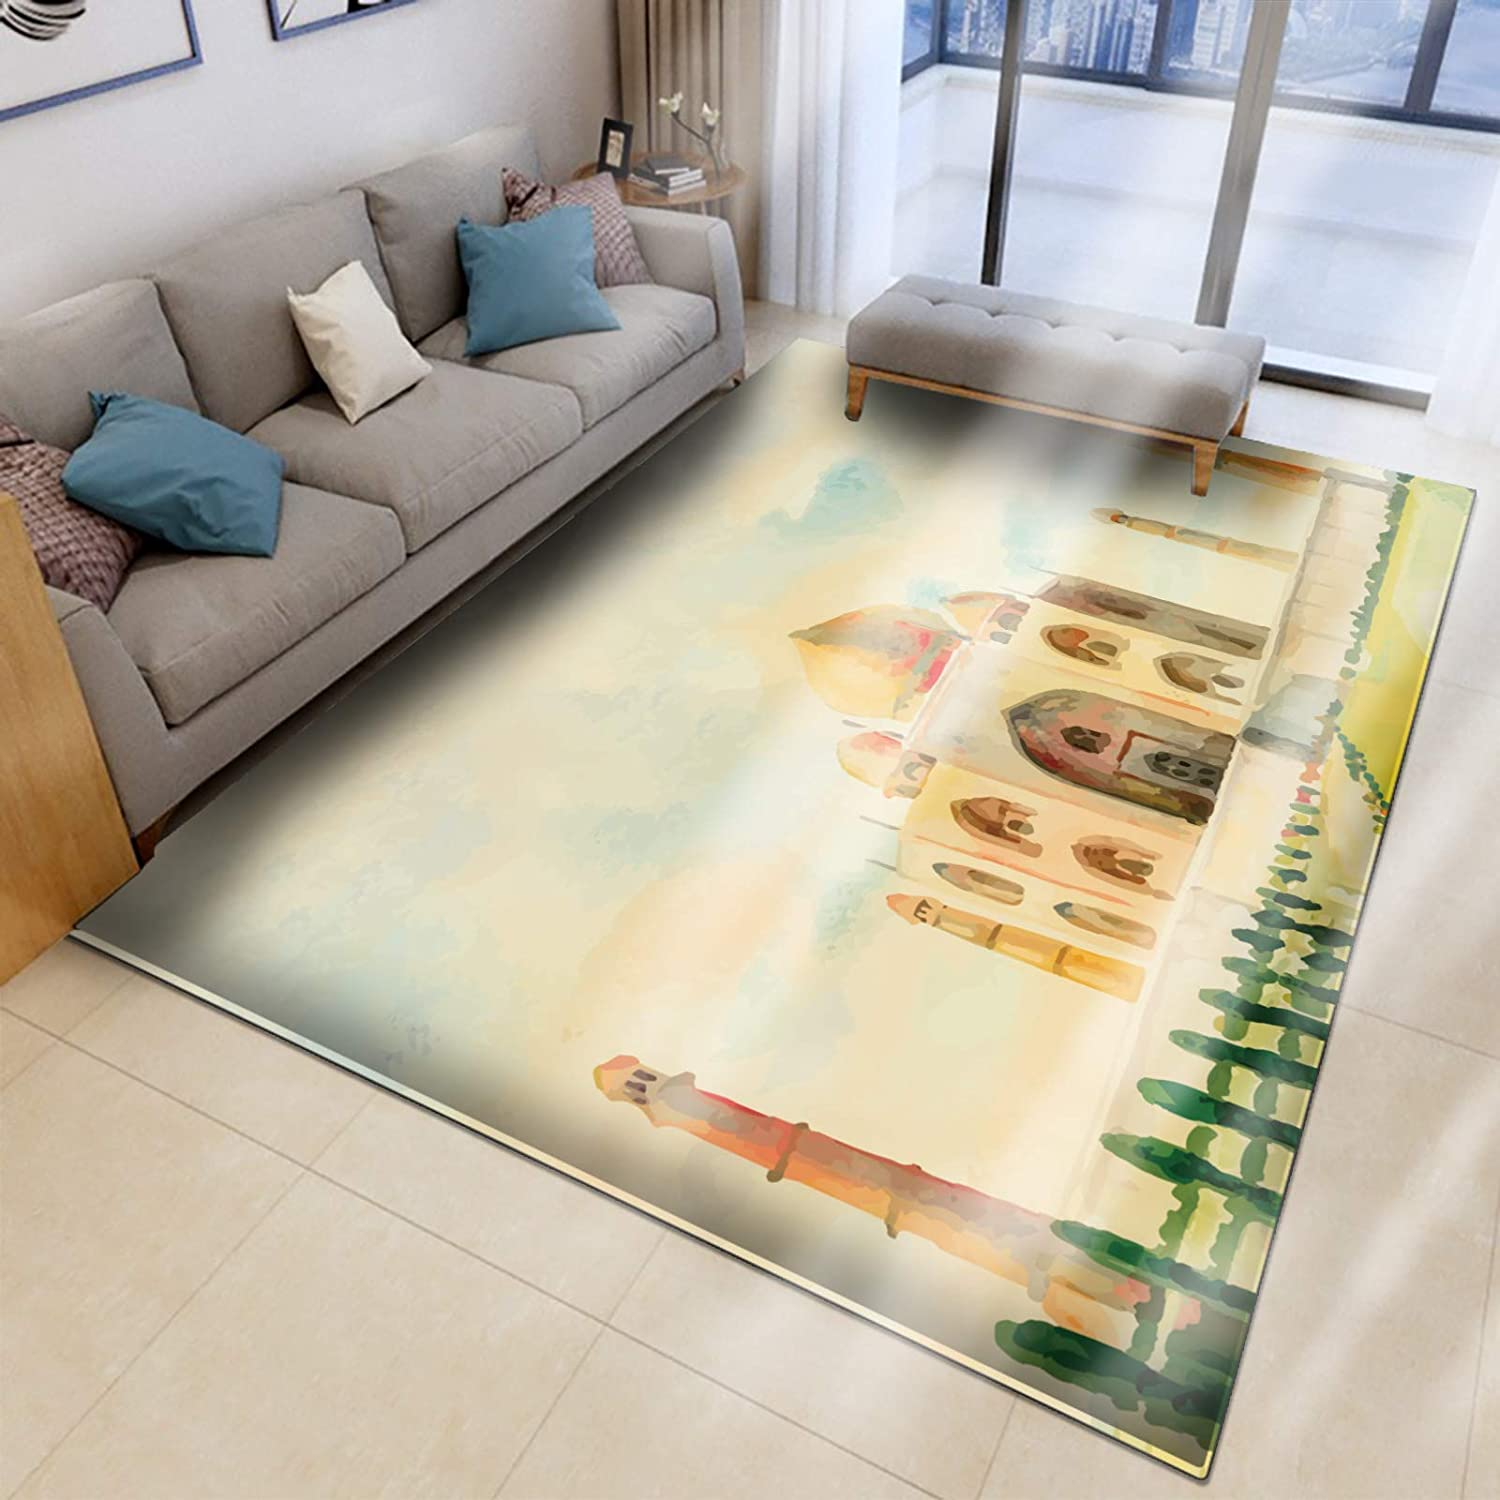 Area Rug for Living Room Bedroom Bathroom Rugs and mats Sets Flannel 3D Carpet Chair Mats for Carpeted Floors (60x90, D186)